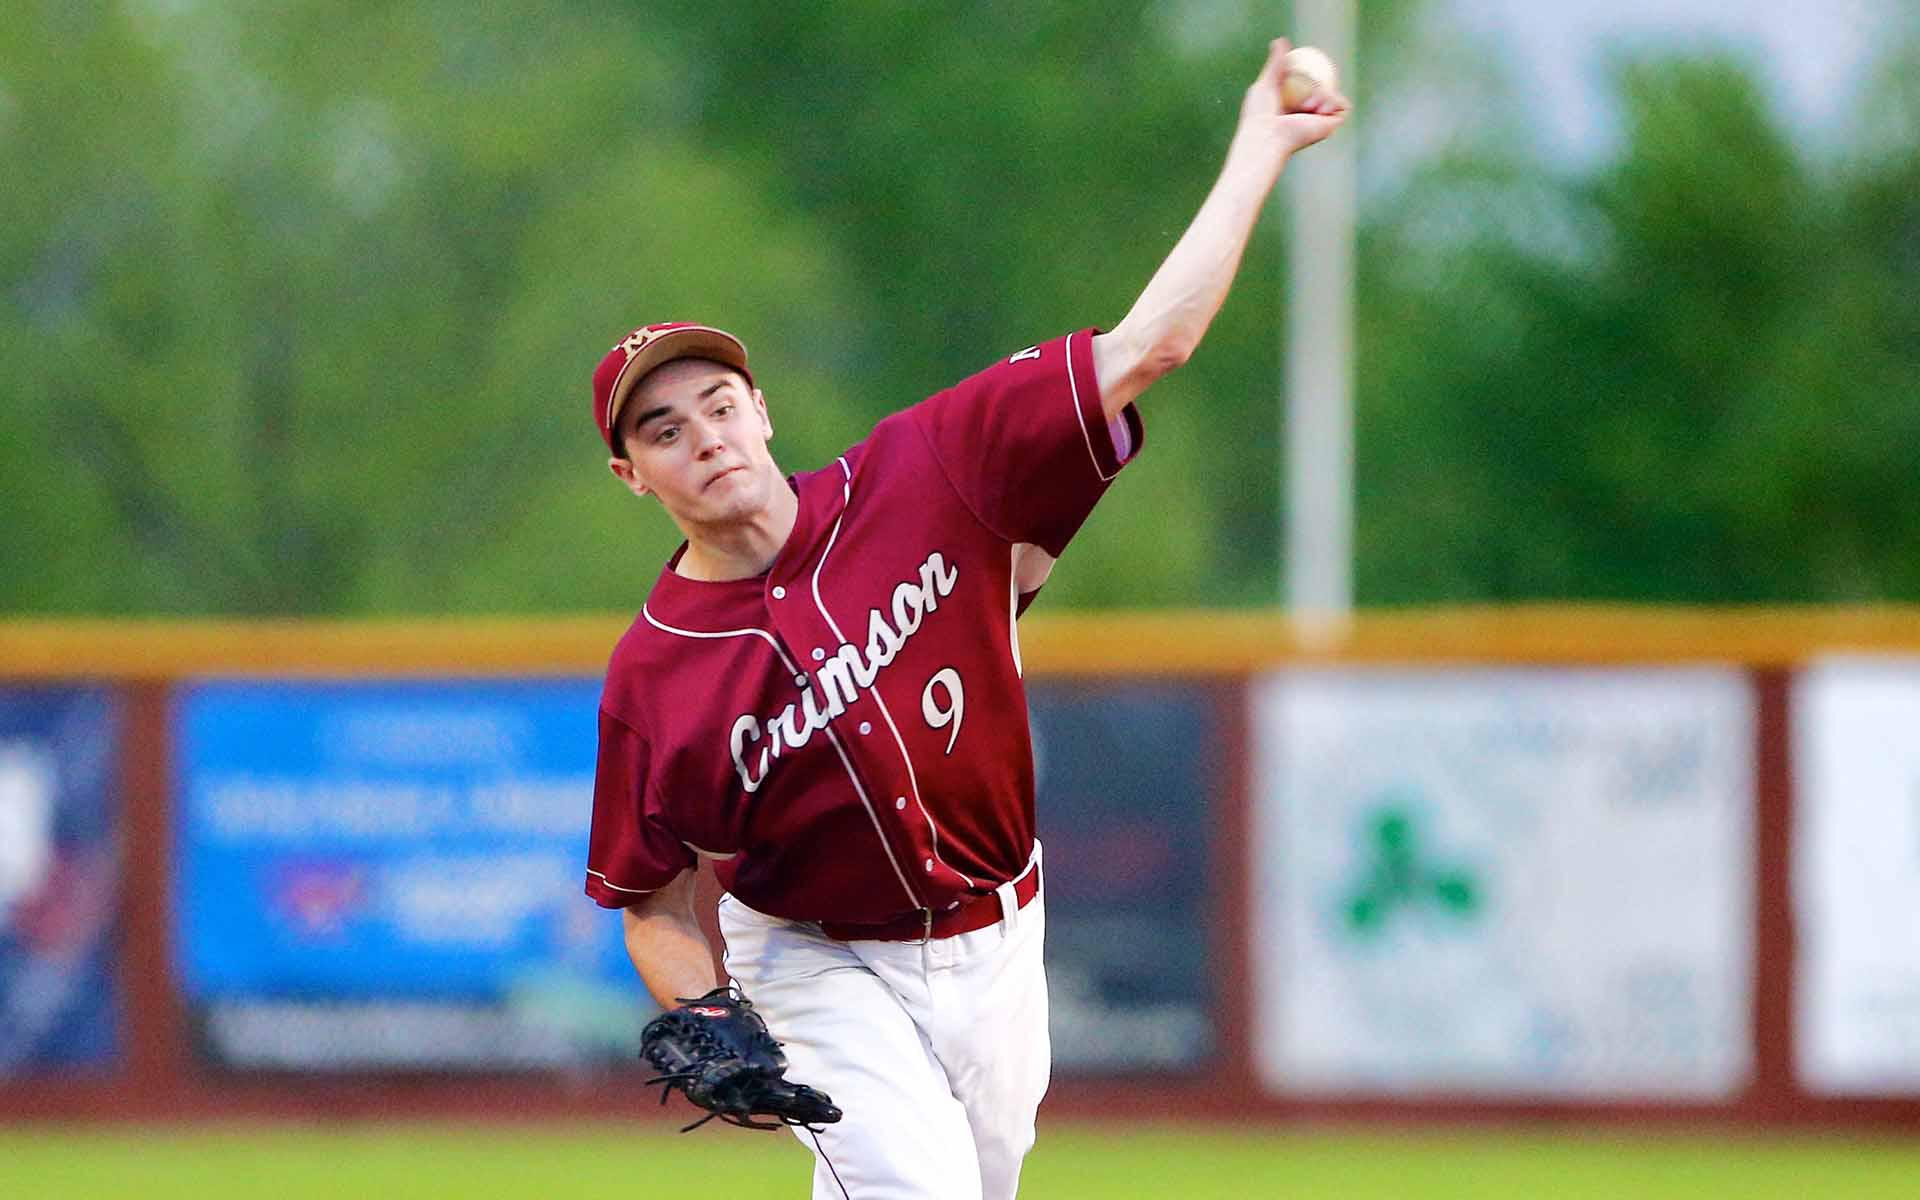 Maple Grove's Charlie Horton, better known as by the nickname Bubba, threw a four-hitter for the Crimson in a 2-0 victory over St. Michael-Albertville on May 15, 2015. Photo by Brian W Nelson, SportsEngine